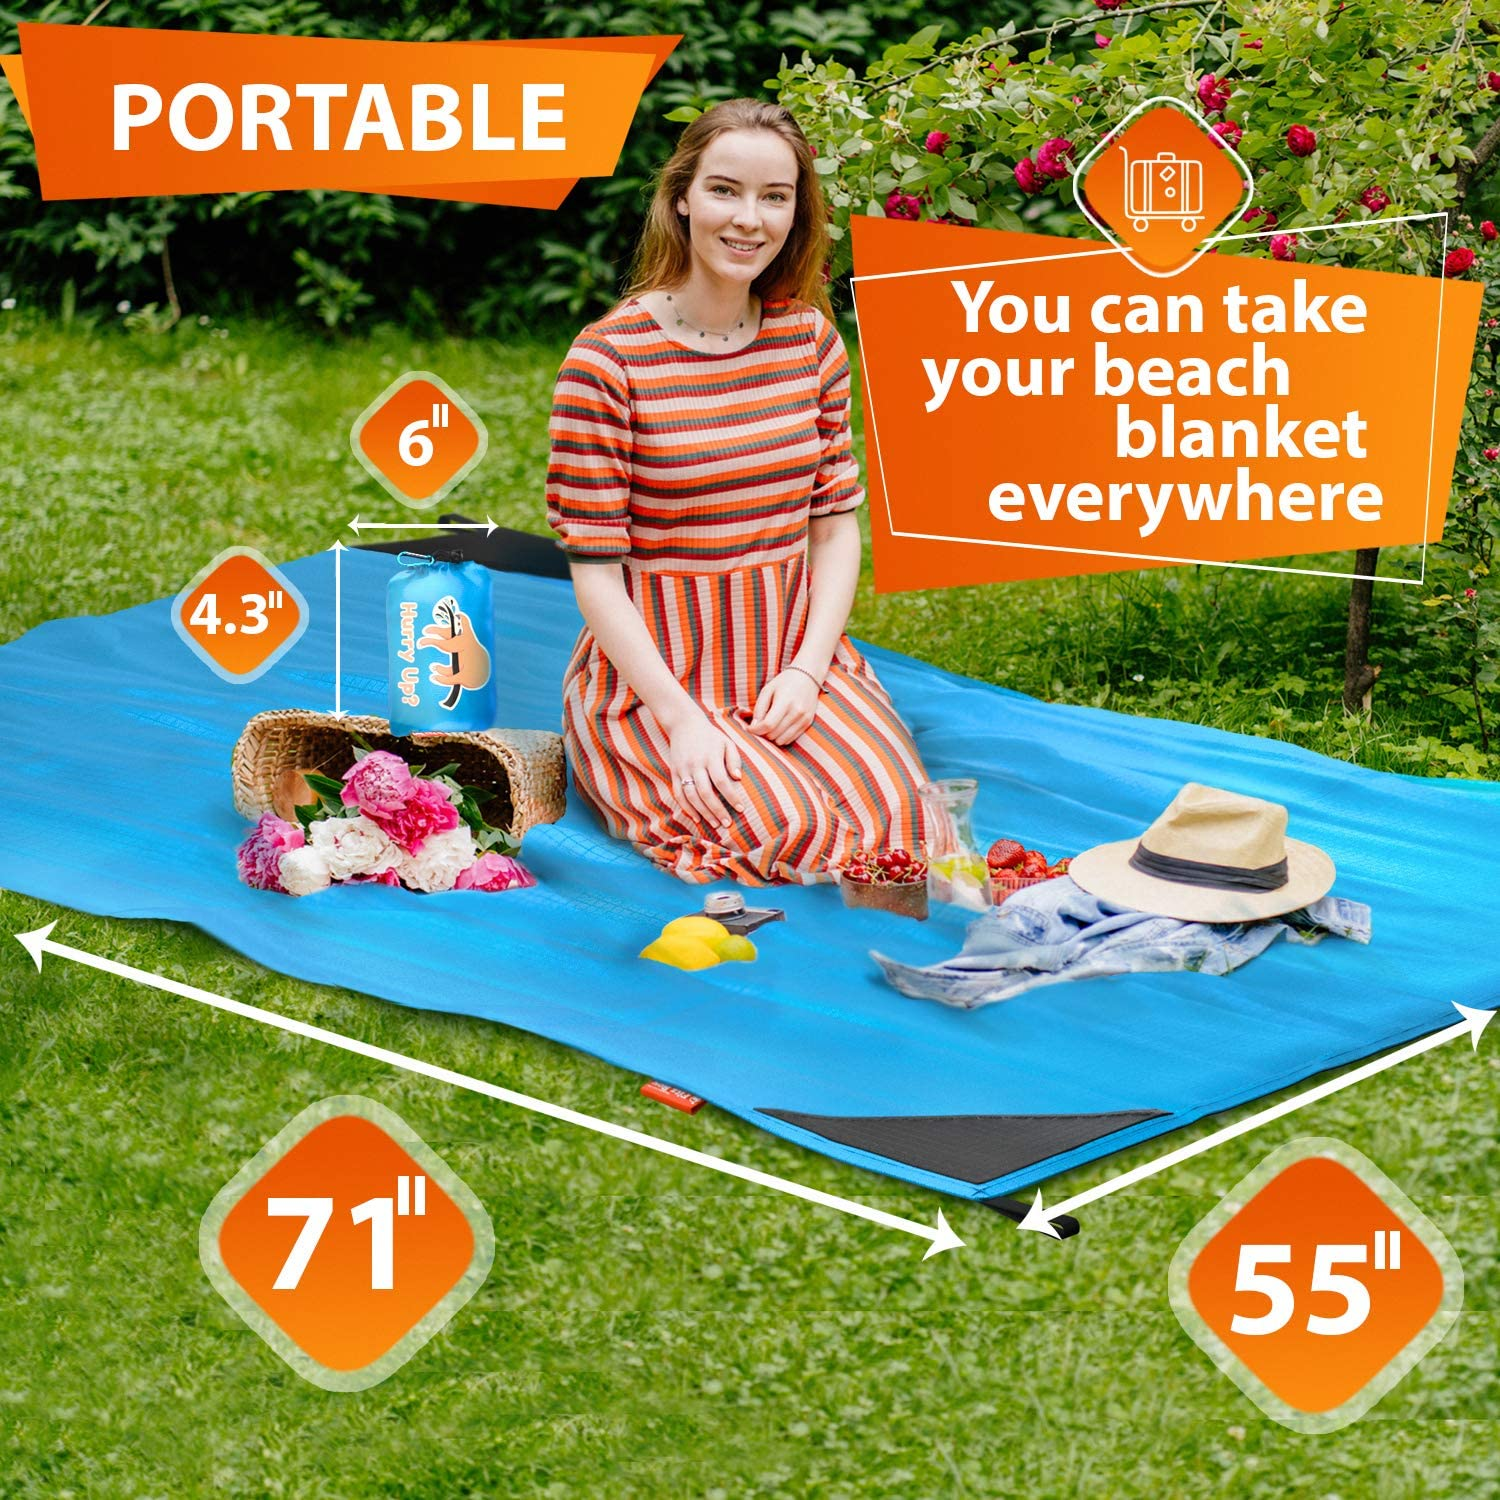 """Music Festival Quickly Drying Beach Mat Sand Free Waterproof for Travel 62/""""x55/"""" Portable Picnic Blankets for 2-3 Adults Lightweight Beach Blanket Sandproof Camping Hiking"""